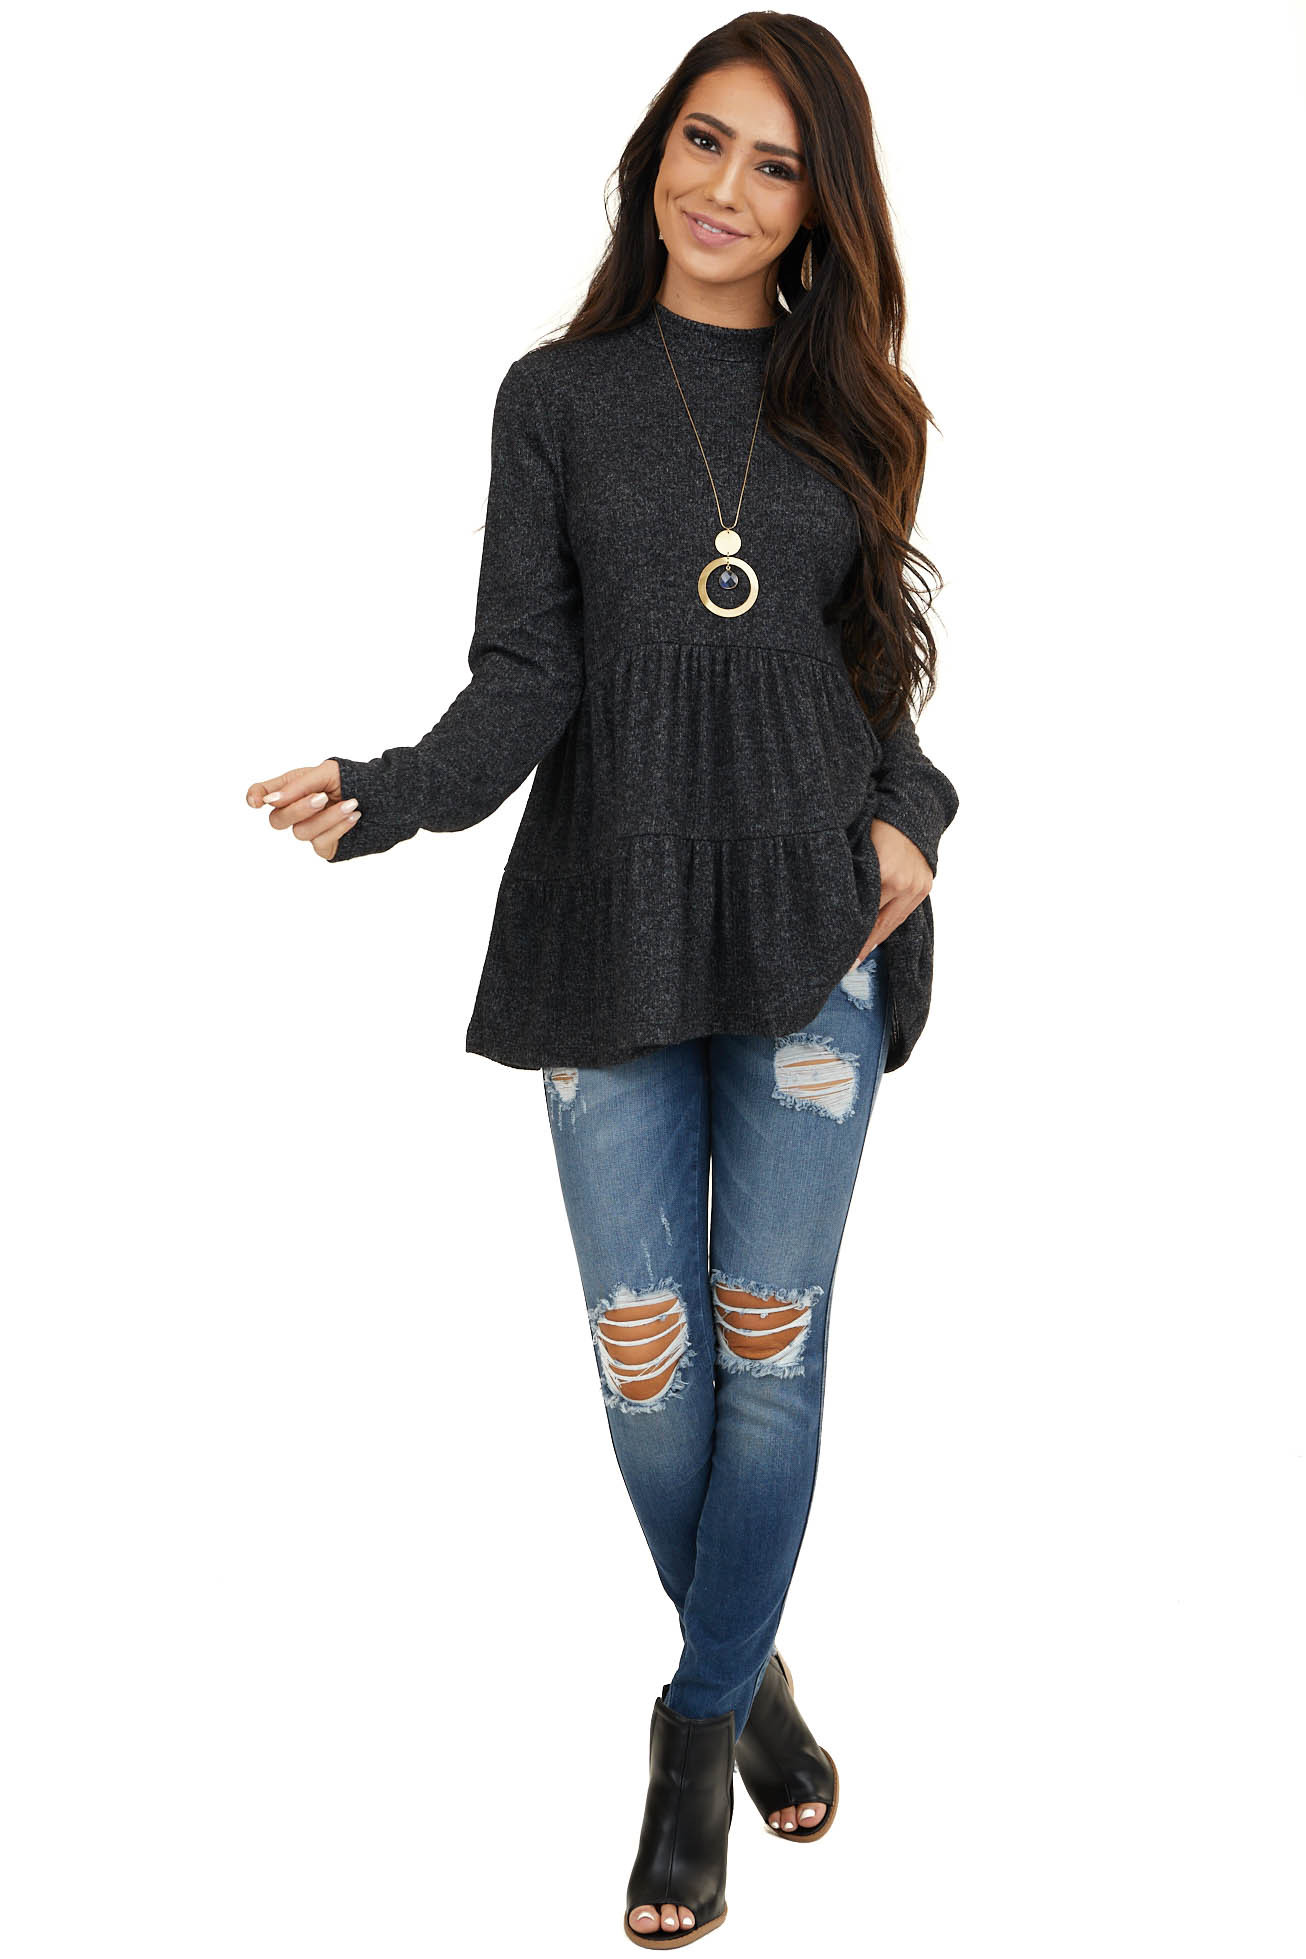 Heathered Charcoal Mock Neck Knit Top with Long Sleeves